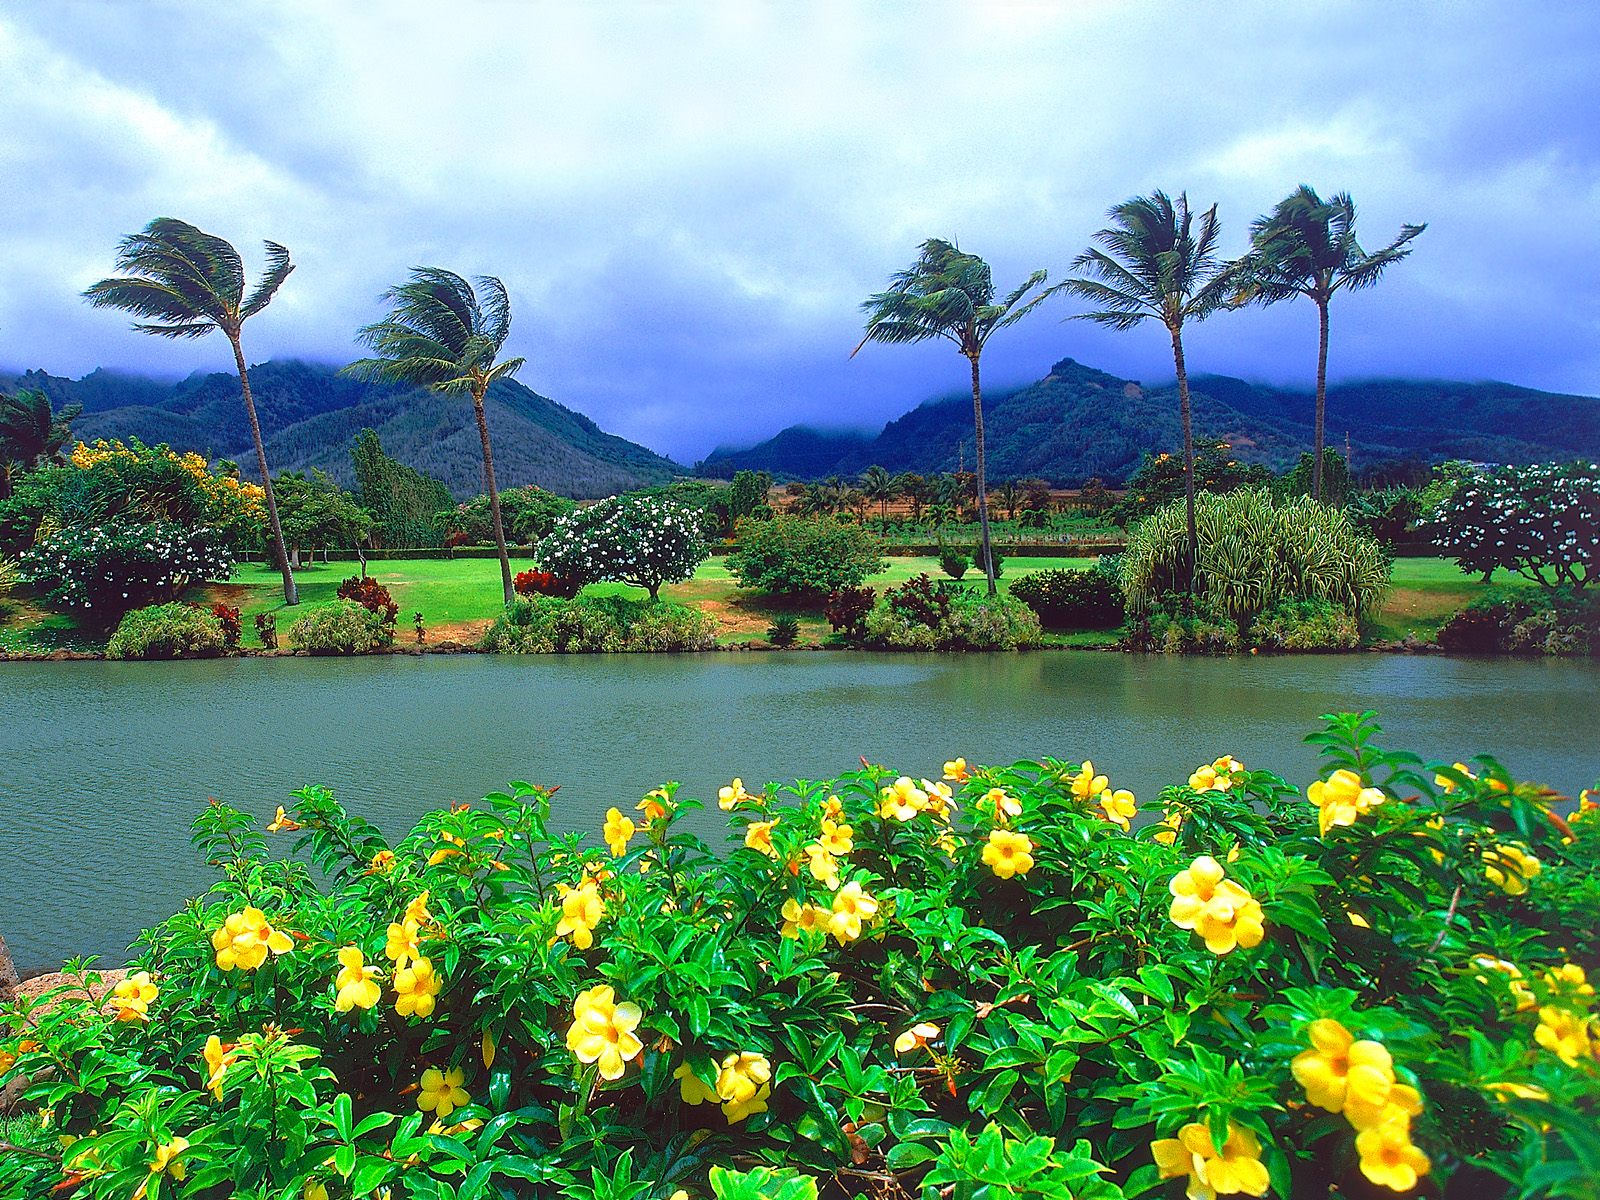 Download Maui Tropical Plantation Hawaii Wallpapers Pictures Photos 1600x1200